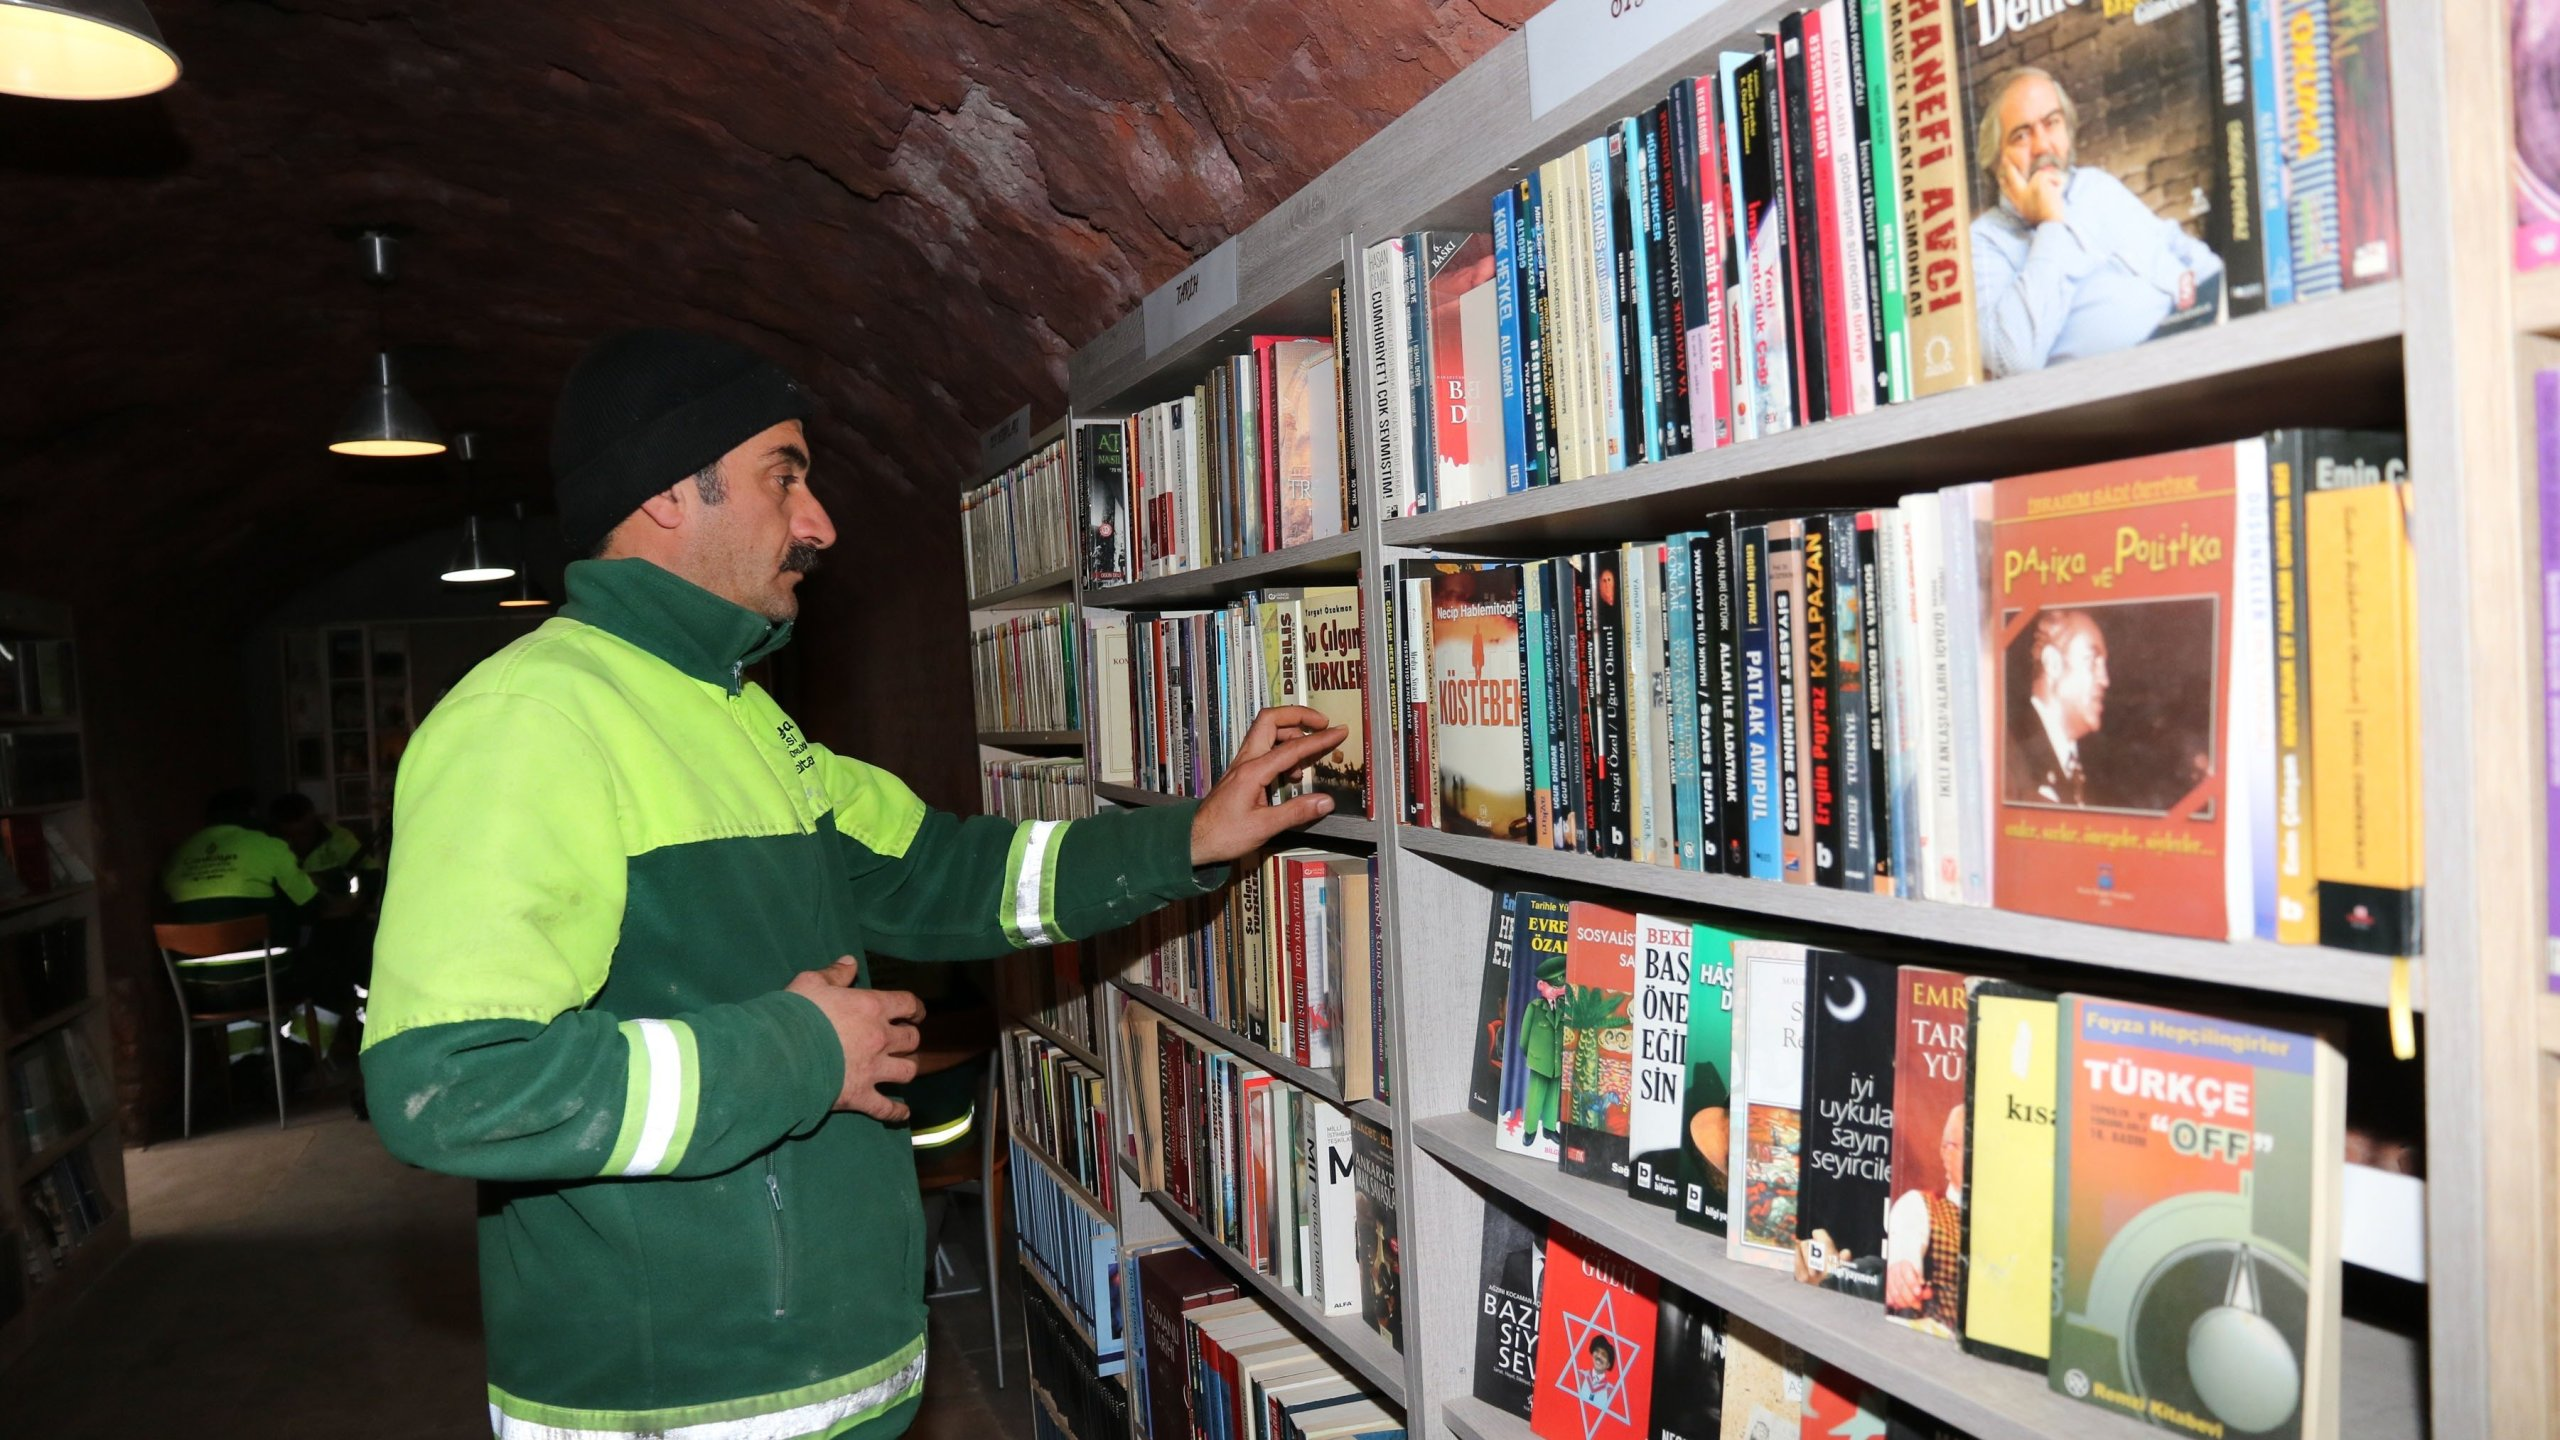 A garbage collector in Ankara browses for books at a library assembled from discarded books. (Credit: Çankaya Municipality Center via CNN)